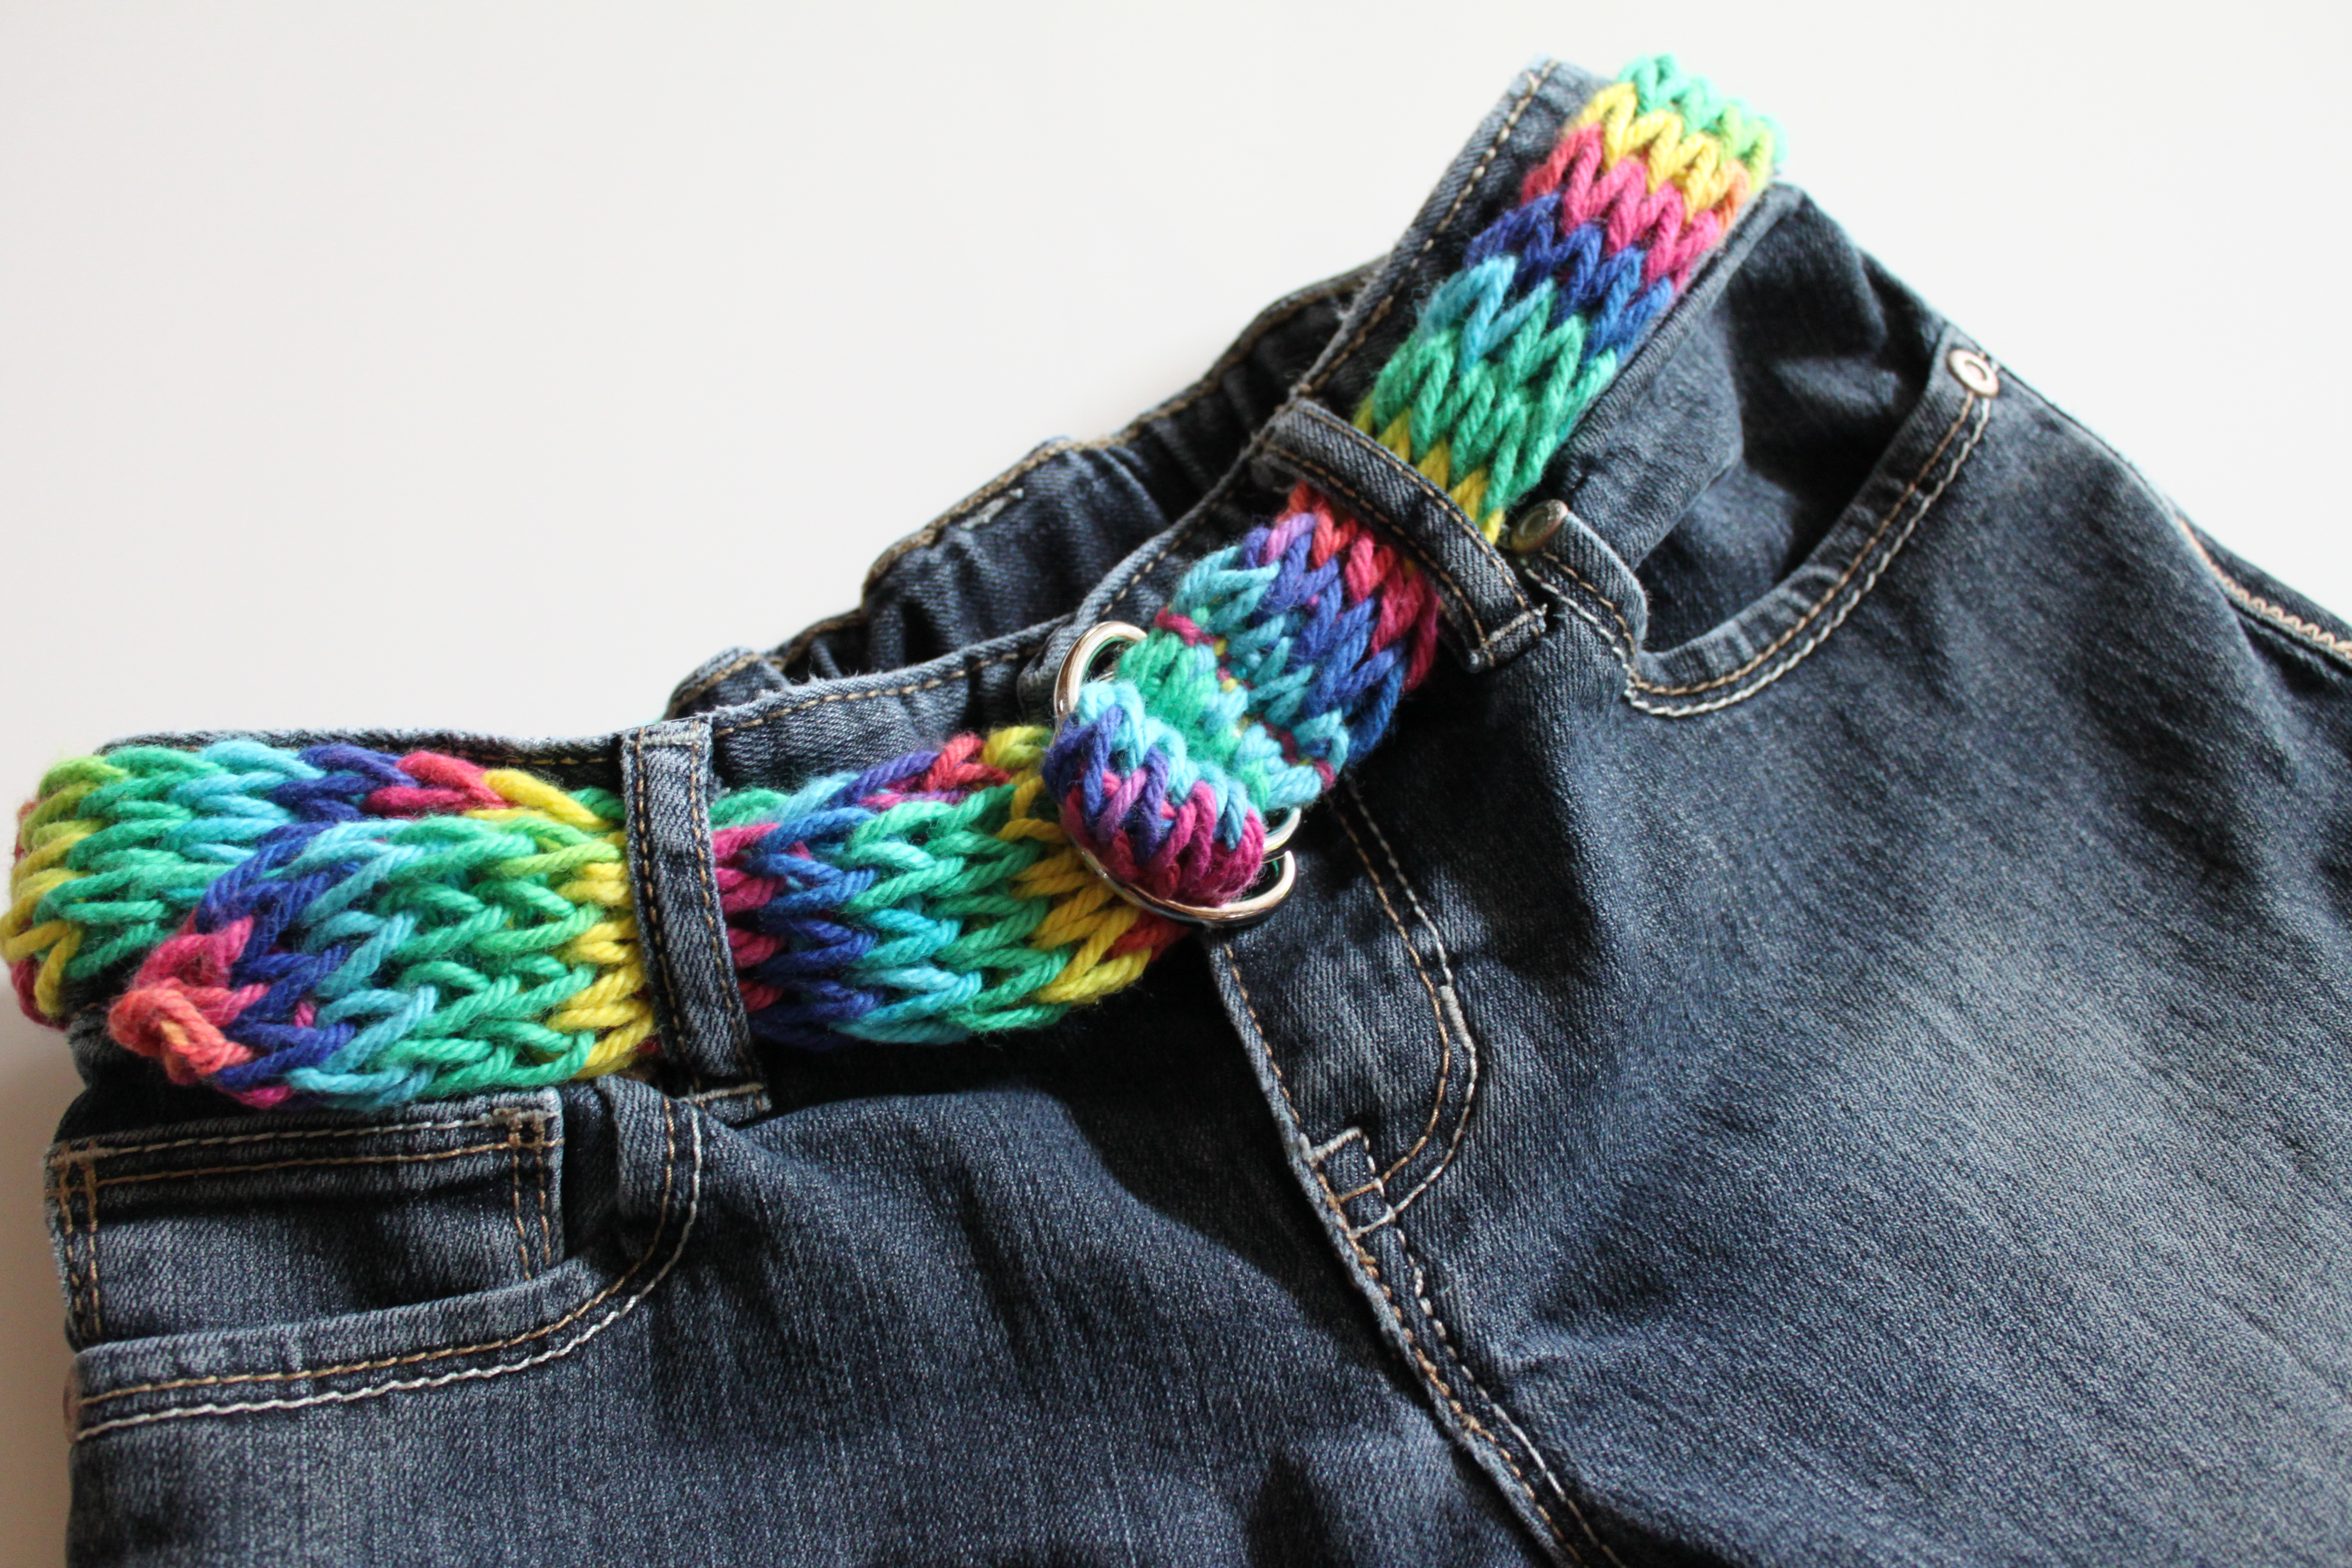 Knitting Nancy Spotlight : Toilet paper roll knitting nancy idea groovy belt my